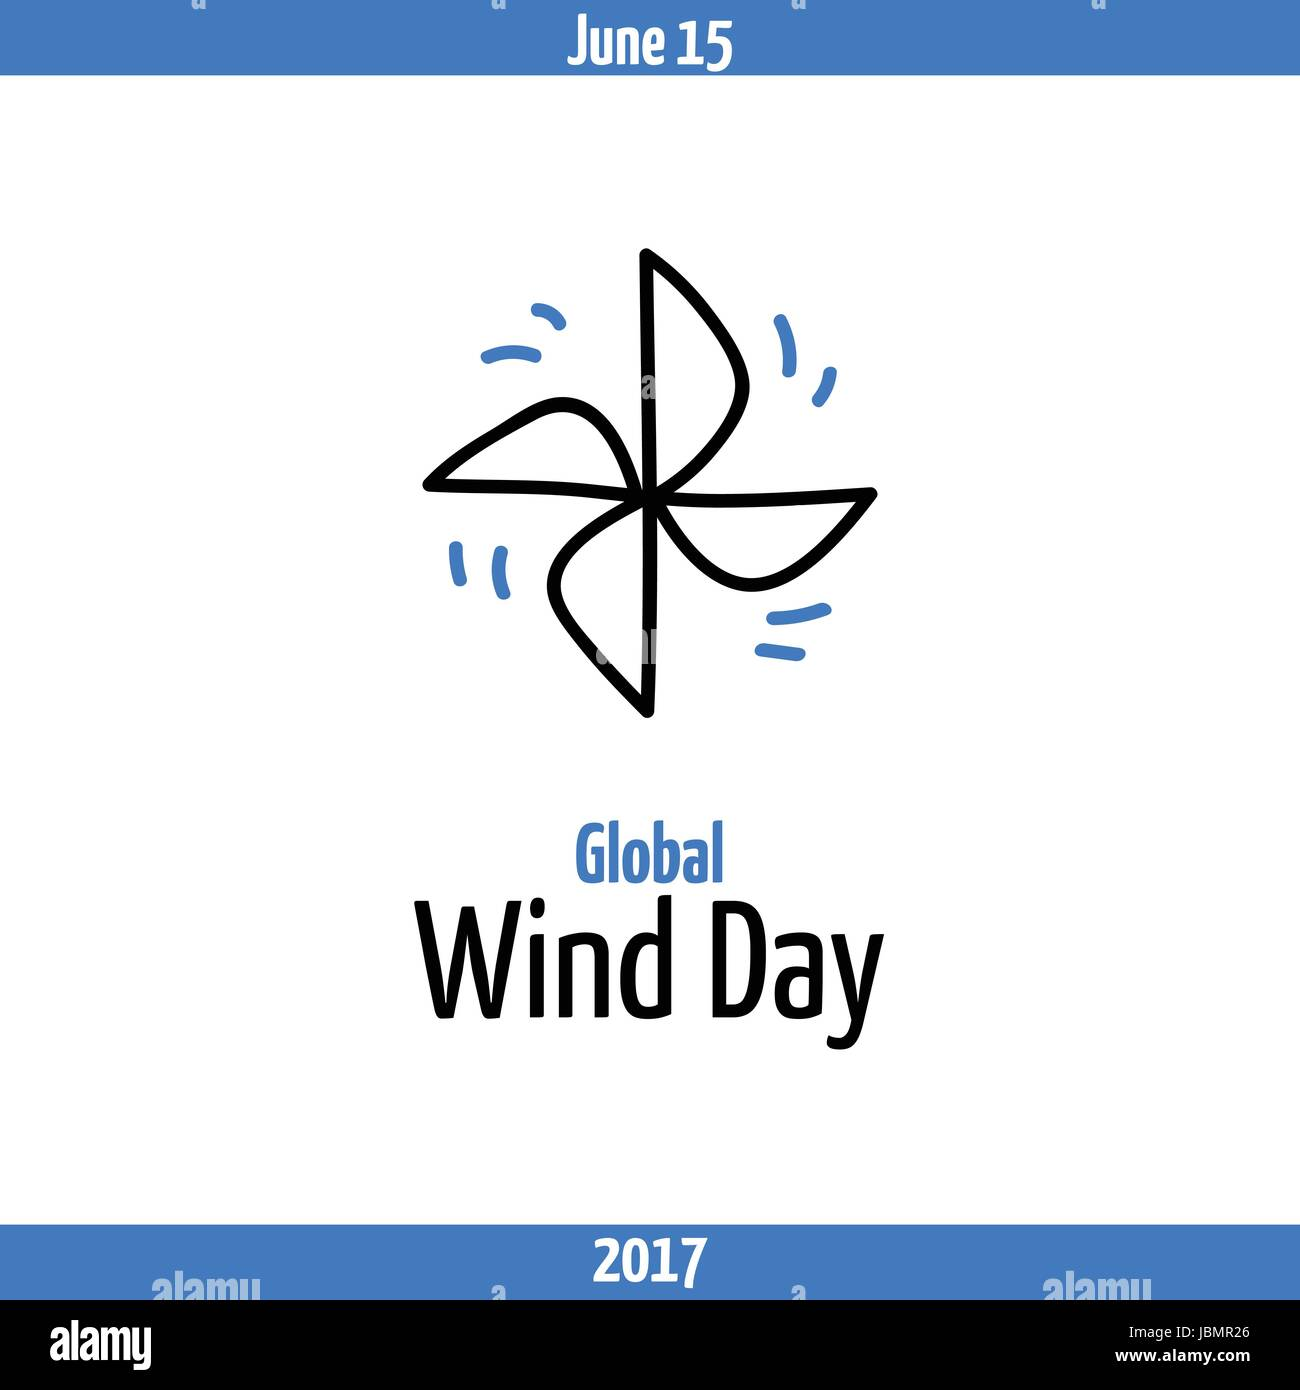 Global Wind Day 2017 June 15 Banner With Pinwheel Symbol Of Wind